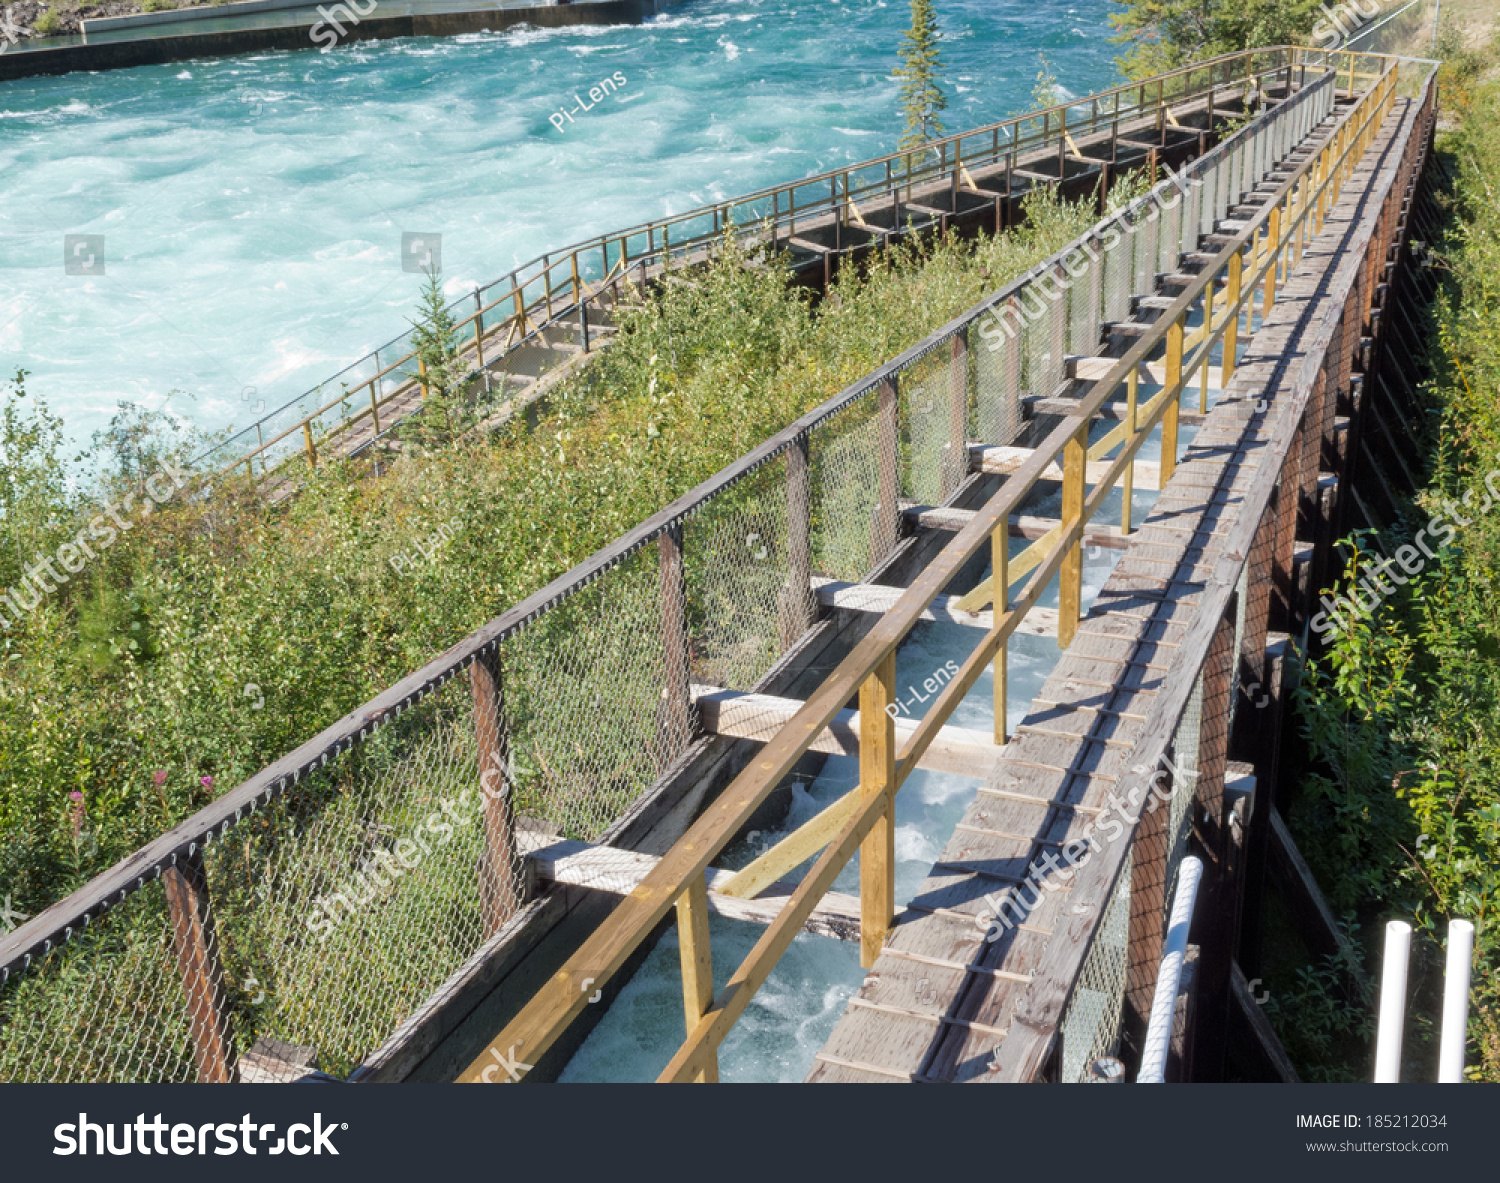 Whitehorse Fish Ladder world's longest wooden Fishway lets Salmon get past dam to their spawning grounds Yukon Territory Canada